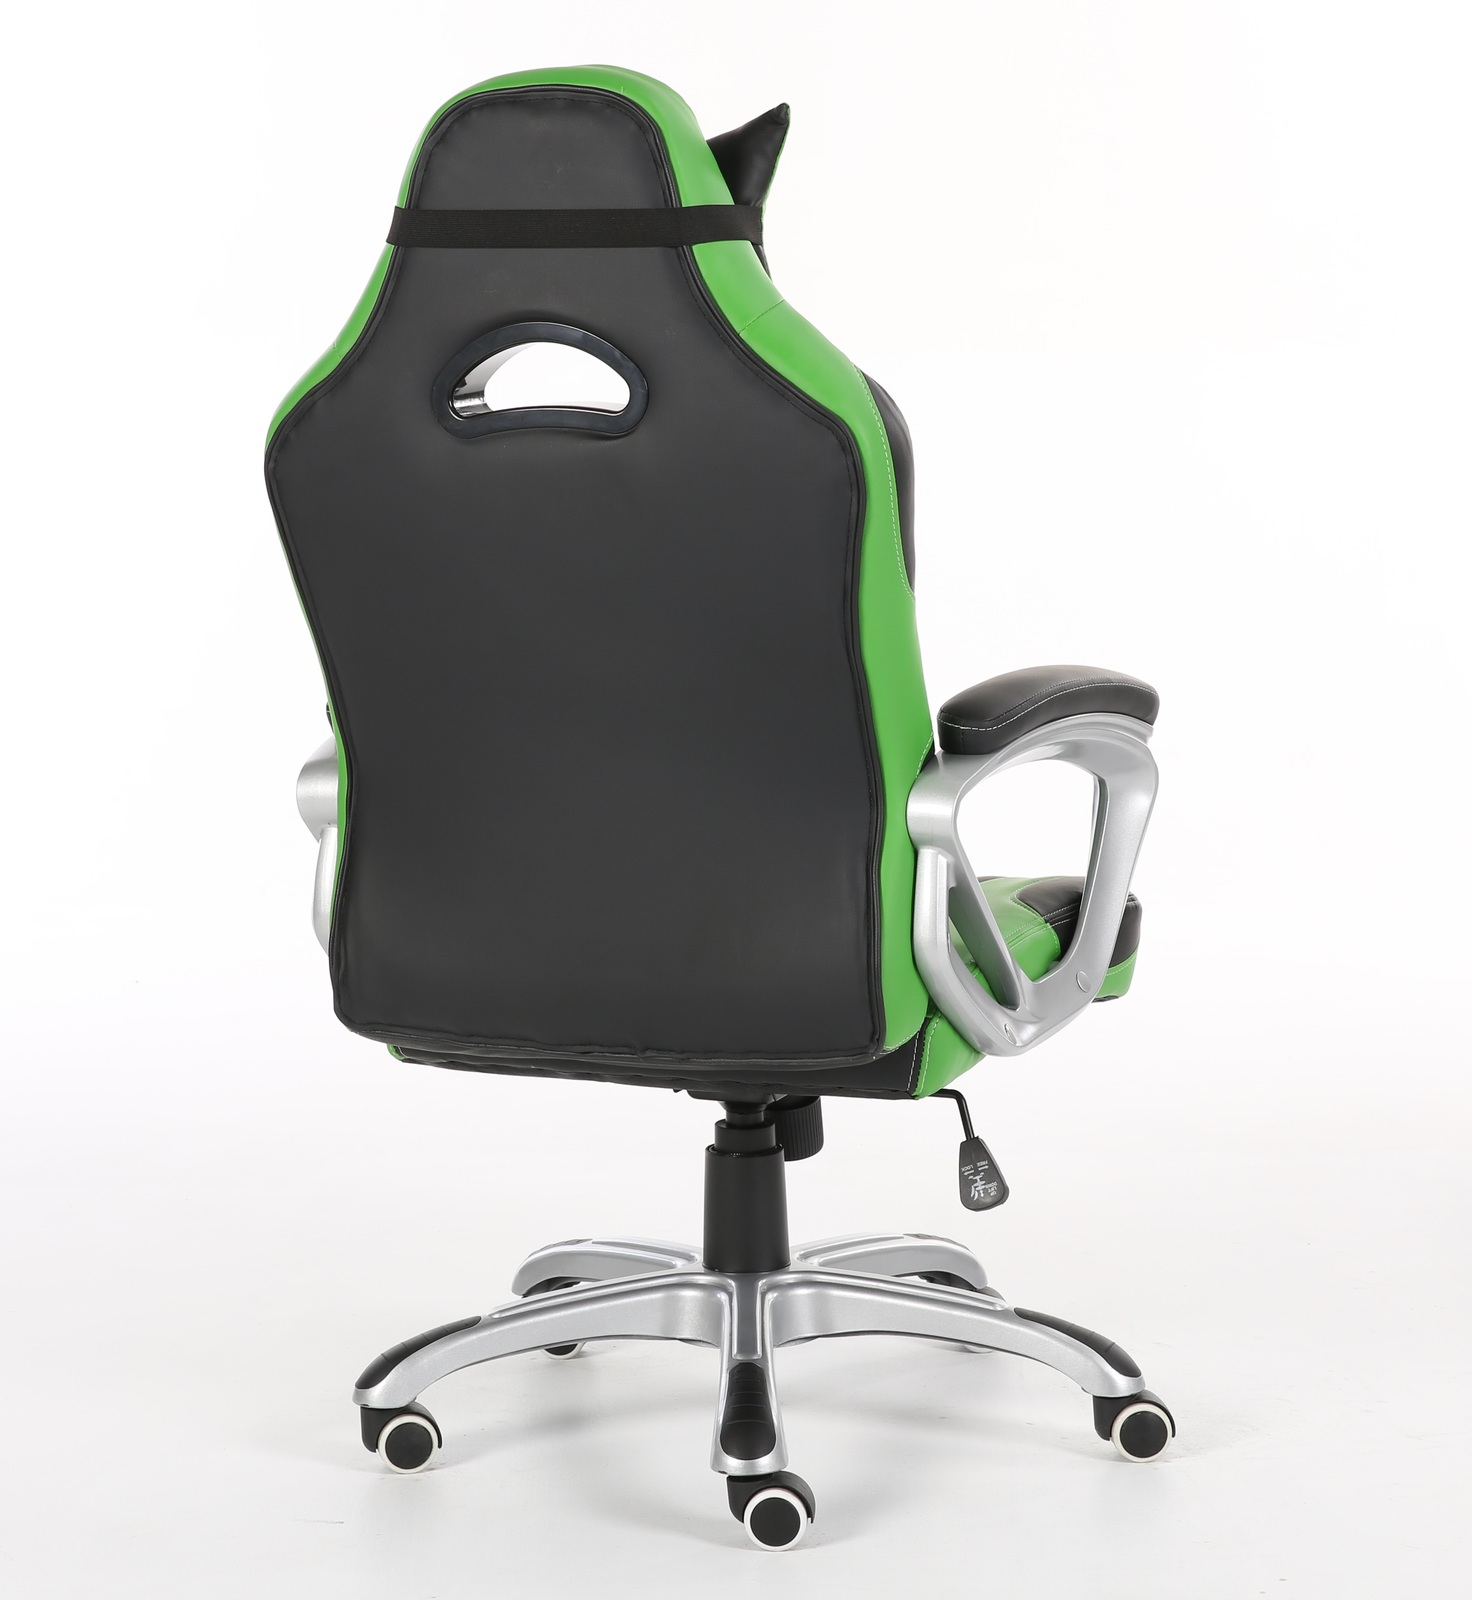 Playmax Gaming Chair Green and Black for  image